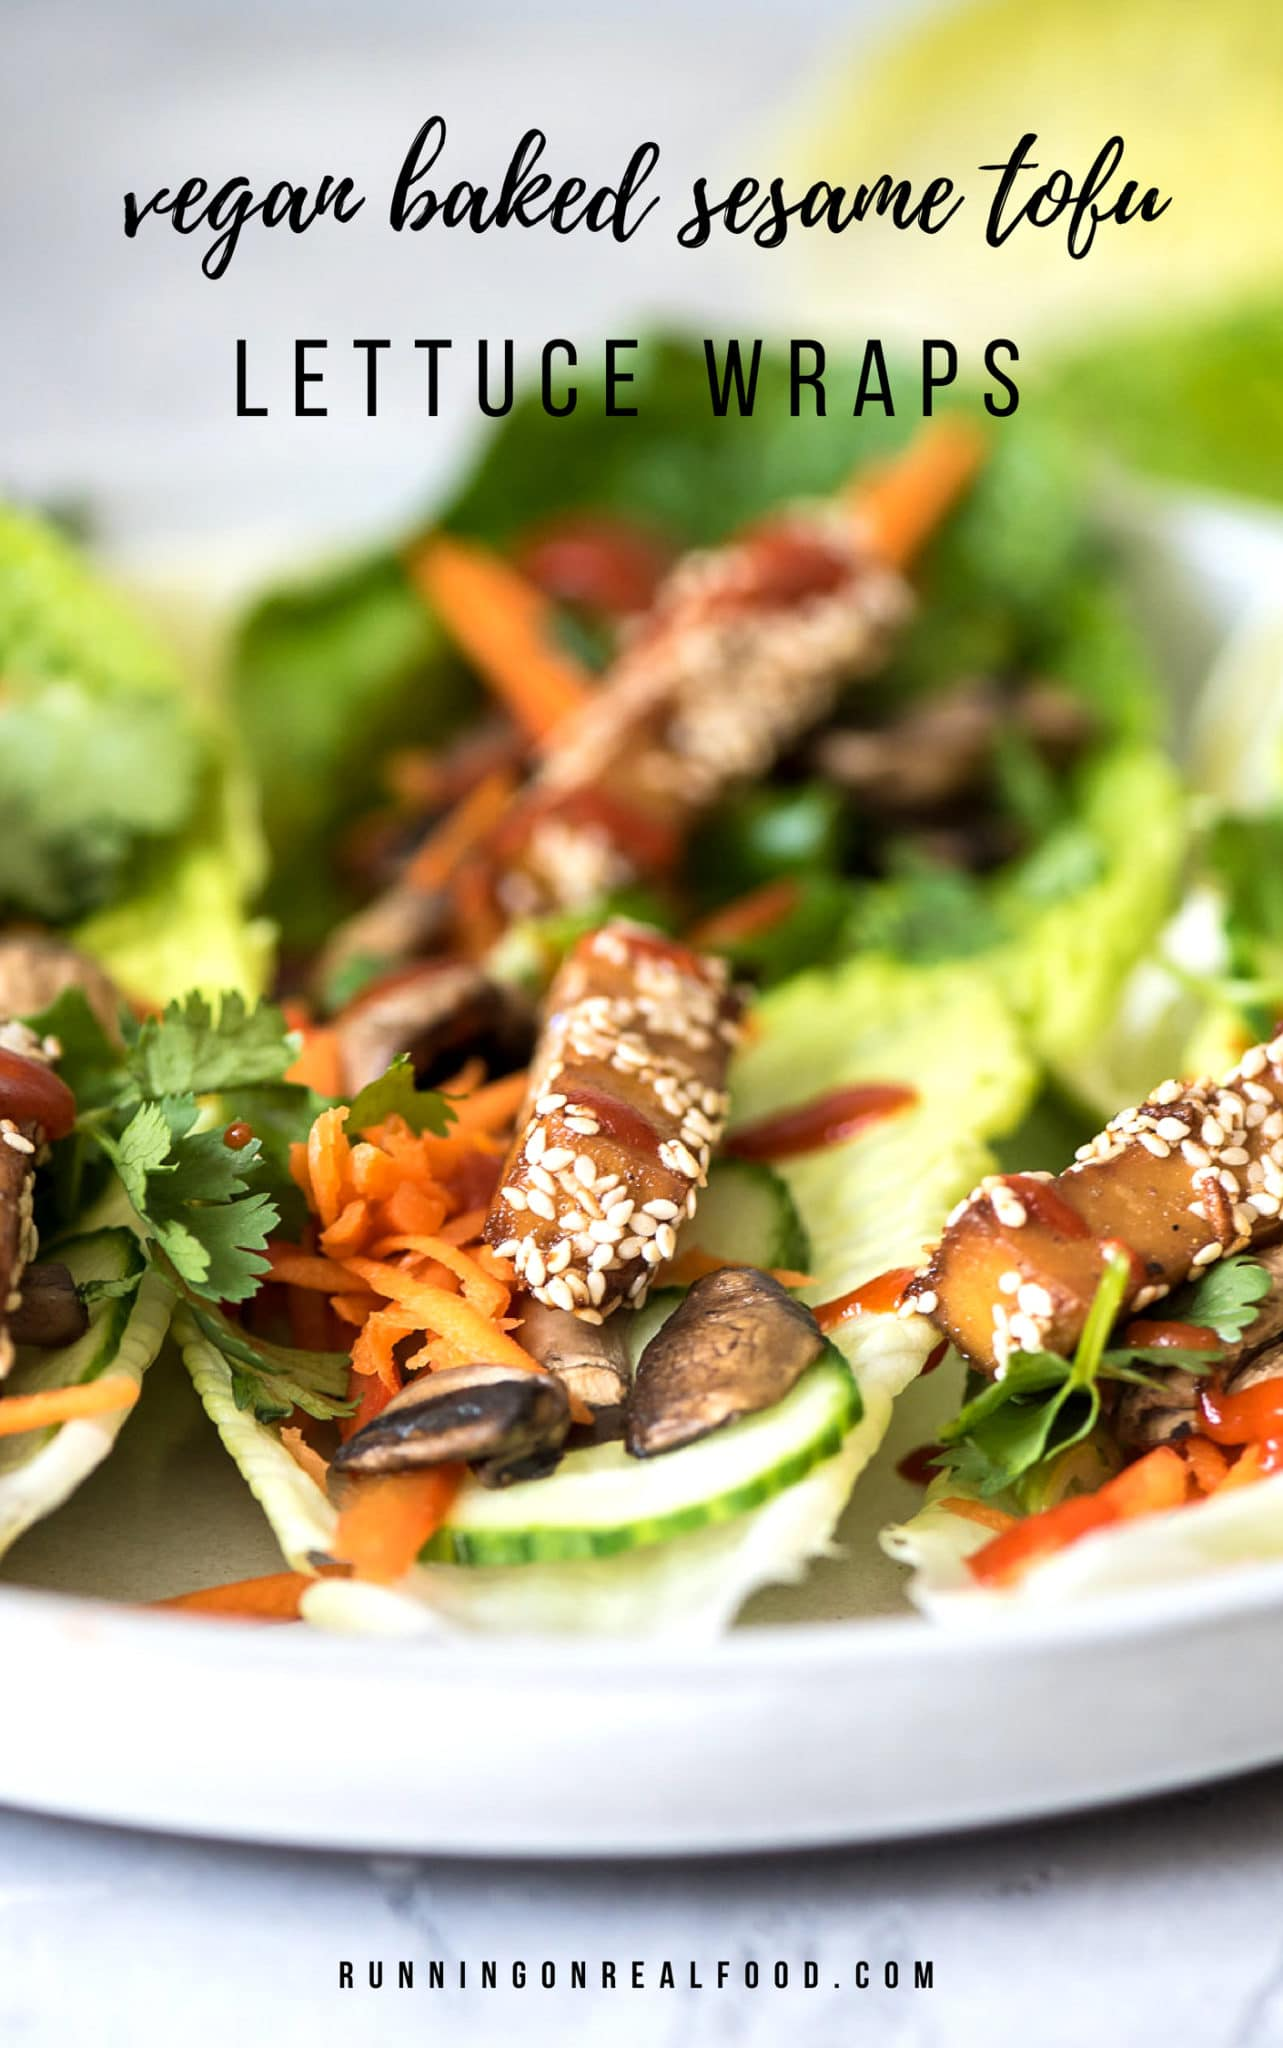 Delicious vegan sesame baked tofu piled into lettuce wraps with sautéed mushrooms, avocado, carrot, green onion, cucumber, cilantro and sriracha. Try these for an easy, healthy plant-based dinner! The leftovers make a great salad too. Try adding almond pad thai sauce for more flavour!#vegan #veganrecipes #veganfood #tofurecipes #tofu #lettucewraps #healthydinners #vegandinners #recipes #dinnerideas #grainfree #glutenfree #plantbased #bakedtofu #sesametofu